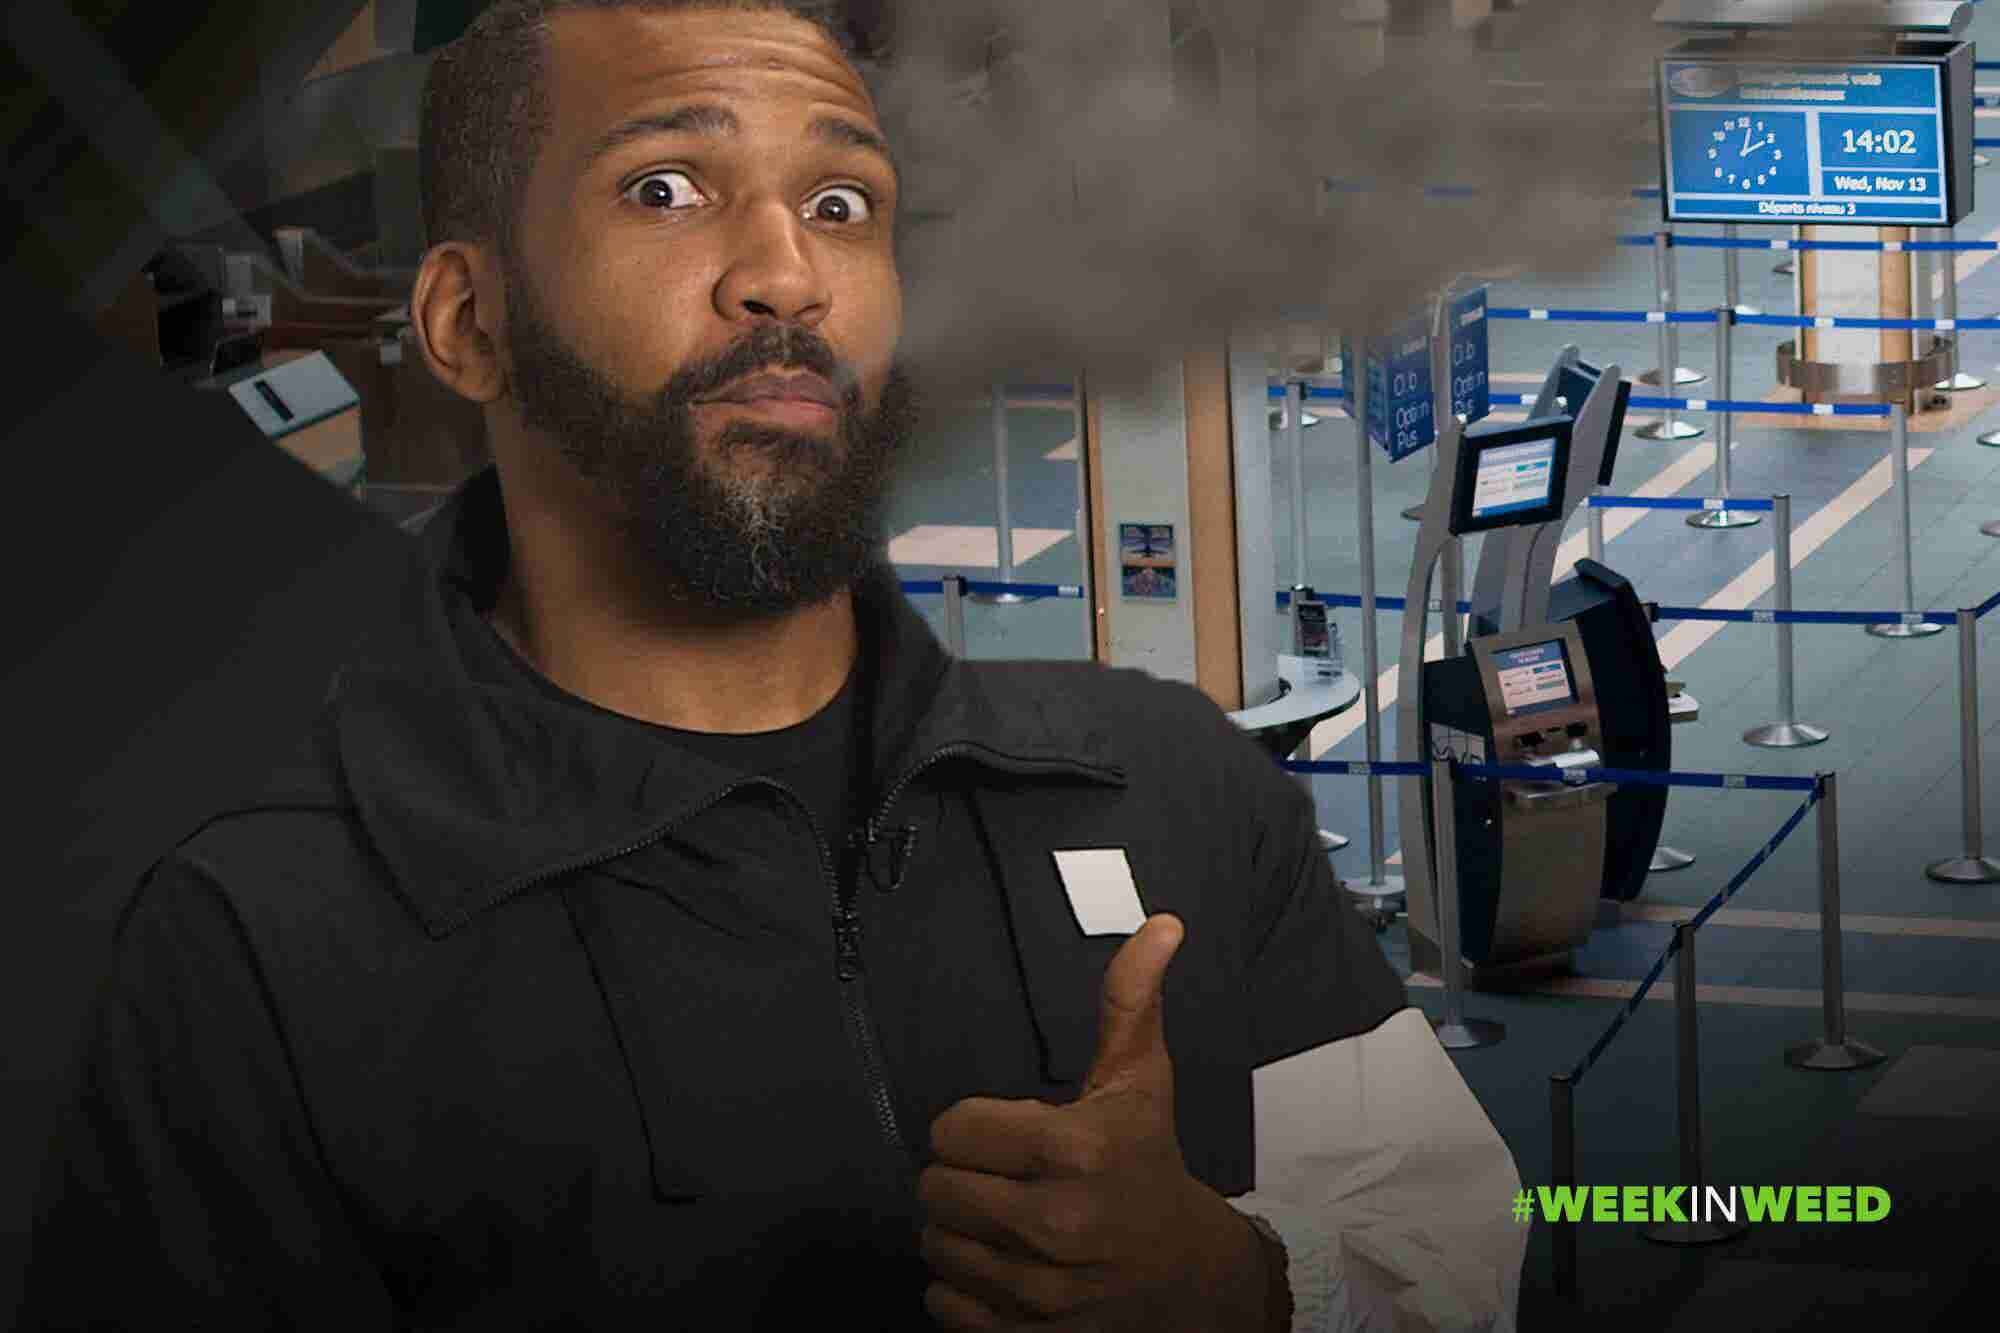 This Week in Weed: You Can Get High At This Airport!